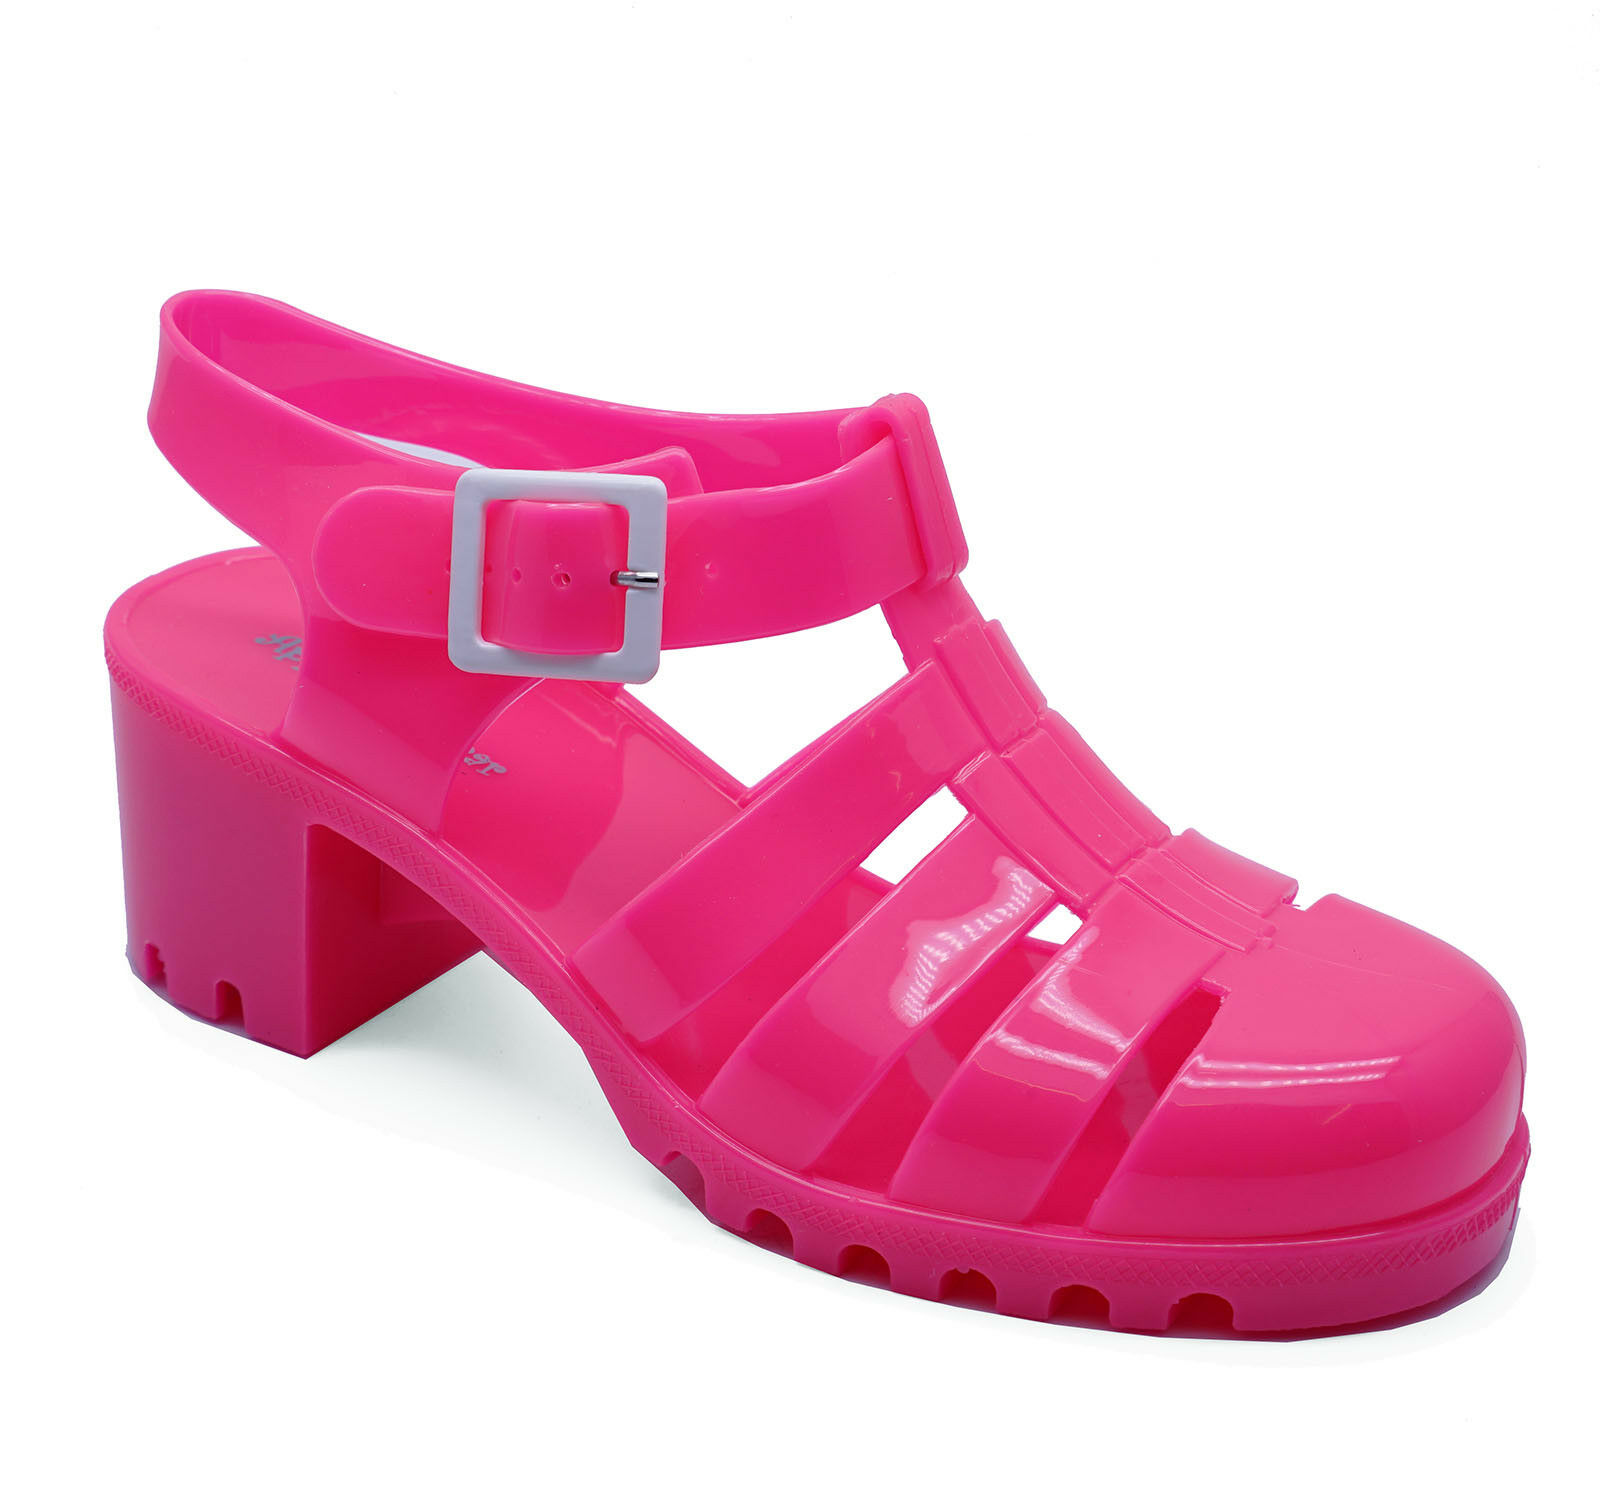 0319d32f18732 Details about WOMENS PINK CHUNKY HEEL PLATFORM JELLY HOLIDAY SANDALS PUMPS  SHOES SIZES 3-8